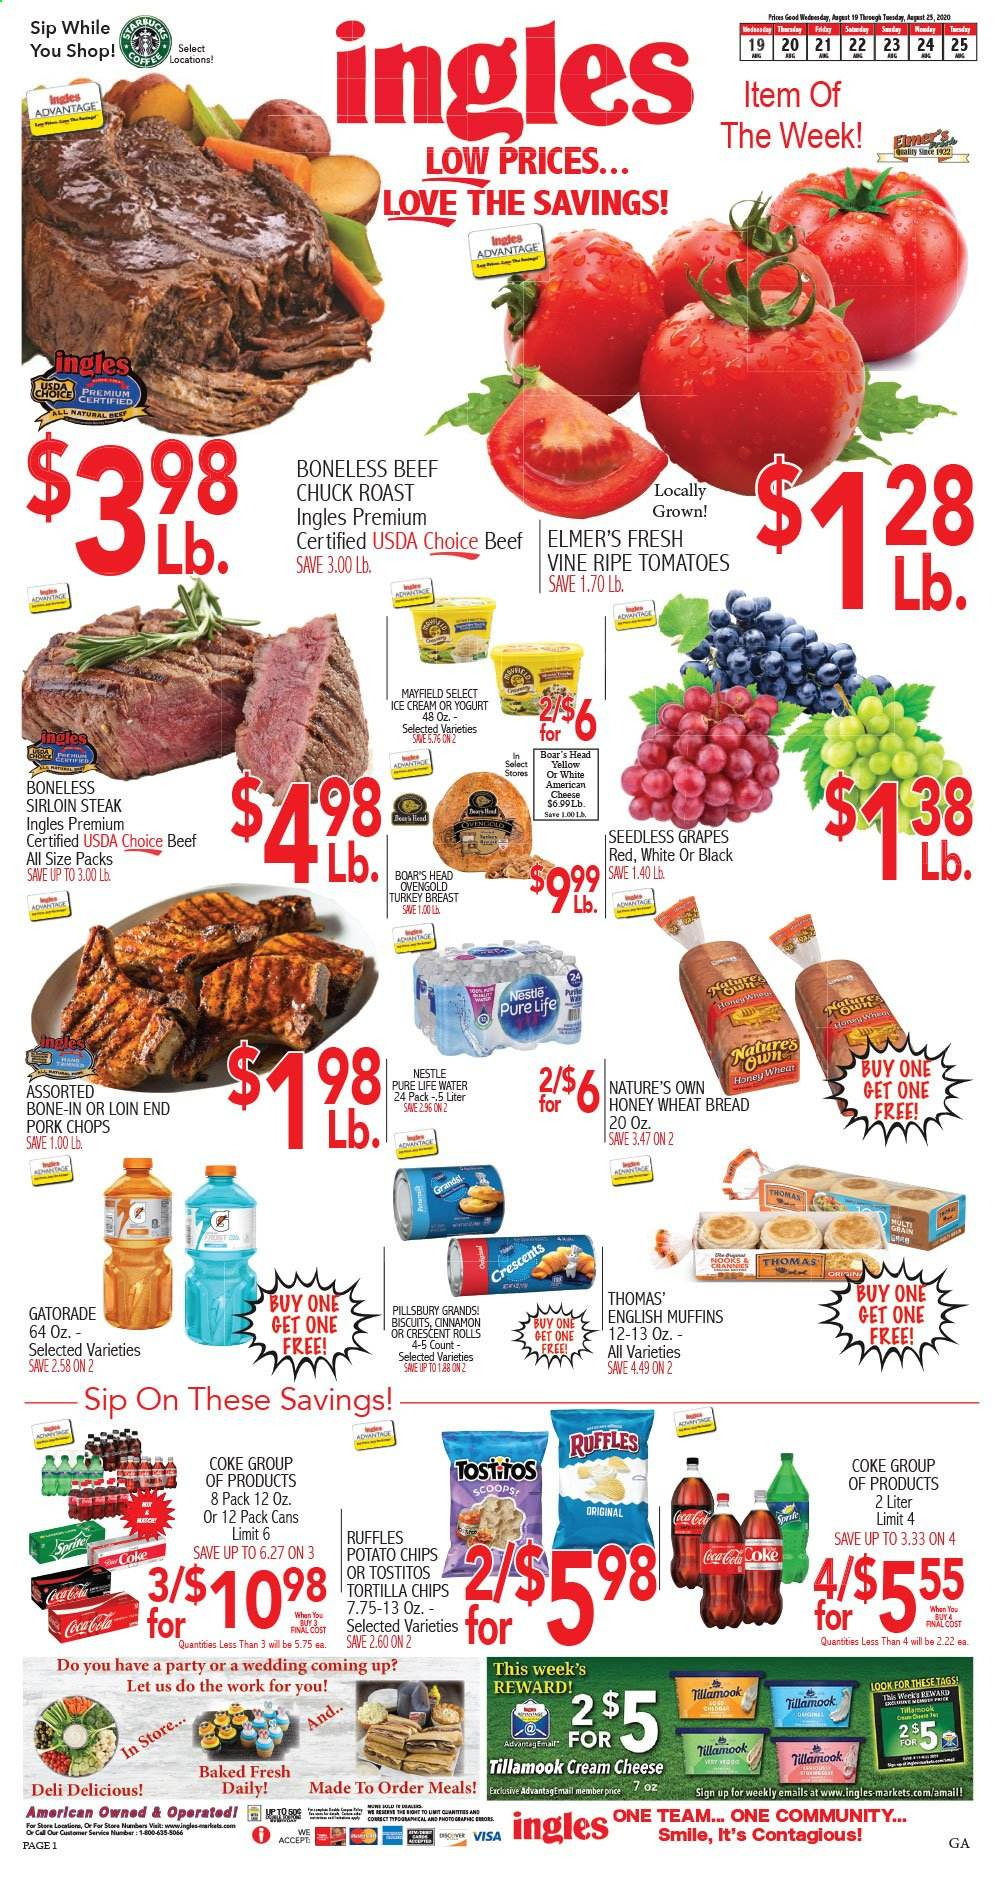 Ingles Flyer - 08.19.2020 - 08.25.2020 - Sales products - tomatoes, grapes, seedless grapes, bread, wheat bread, muffin, cream cheese, english muffins, cheese, ice cream, Nestlé, tortilla chips, potato chips, chips, Pillsbury, honey, Coca-Cola, water, turkey, turkey breast, beef meat, steak, pork chops, pork meat, muffins. Page 1.